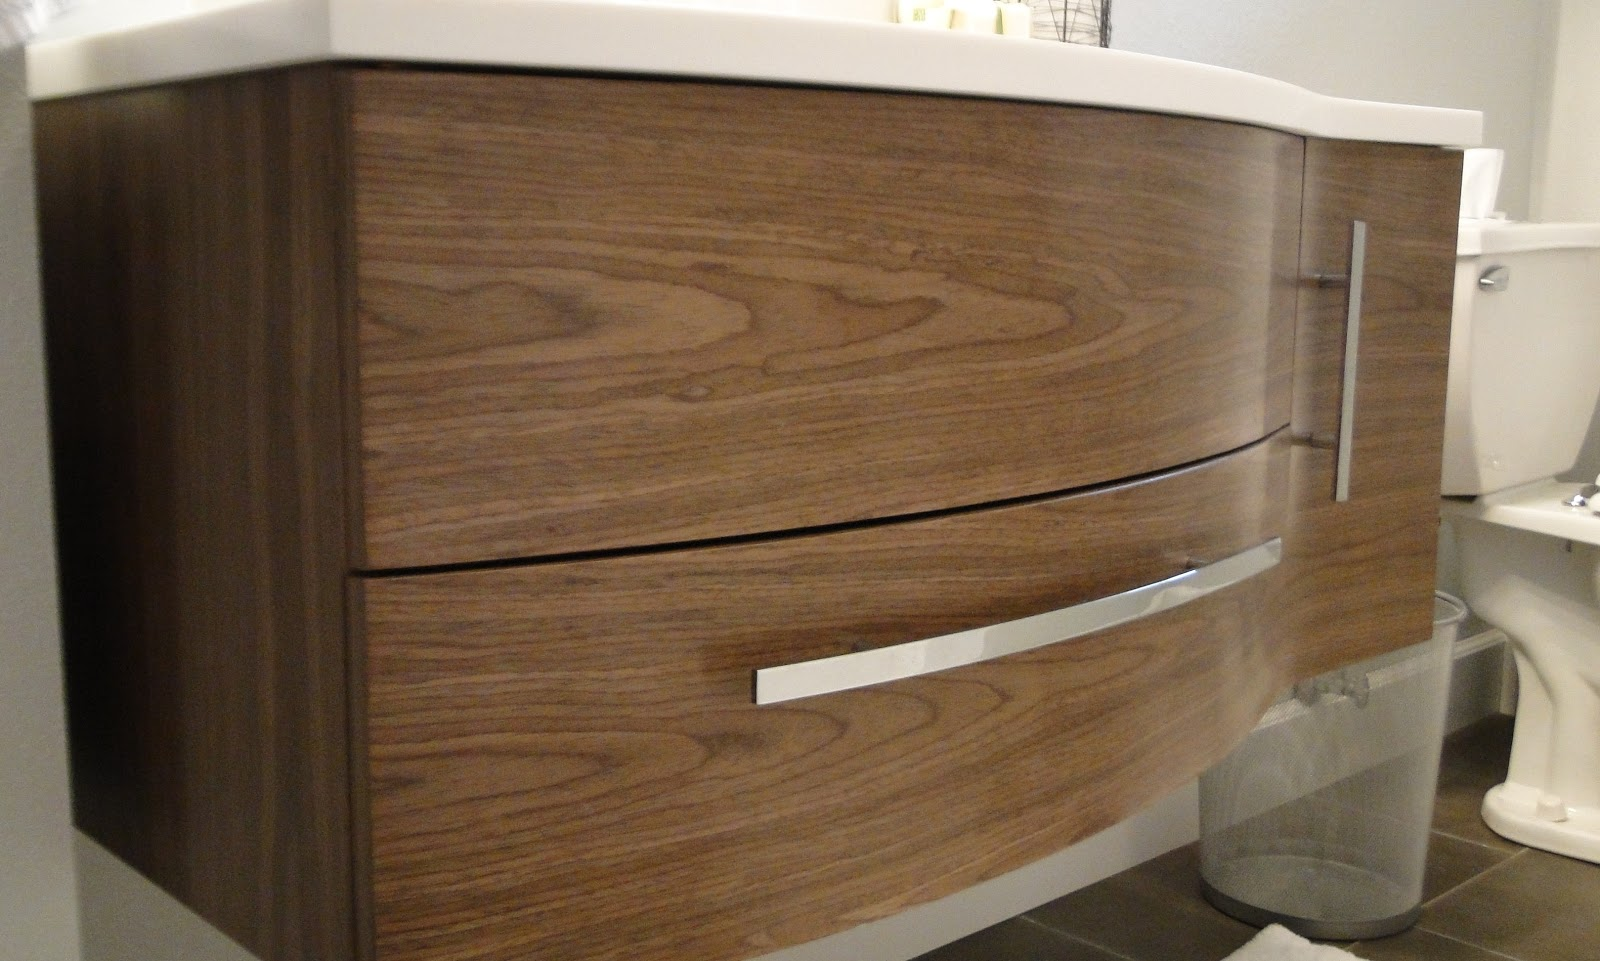 Looking back at our bathroom reno, here are some reflections on the